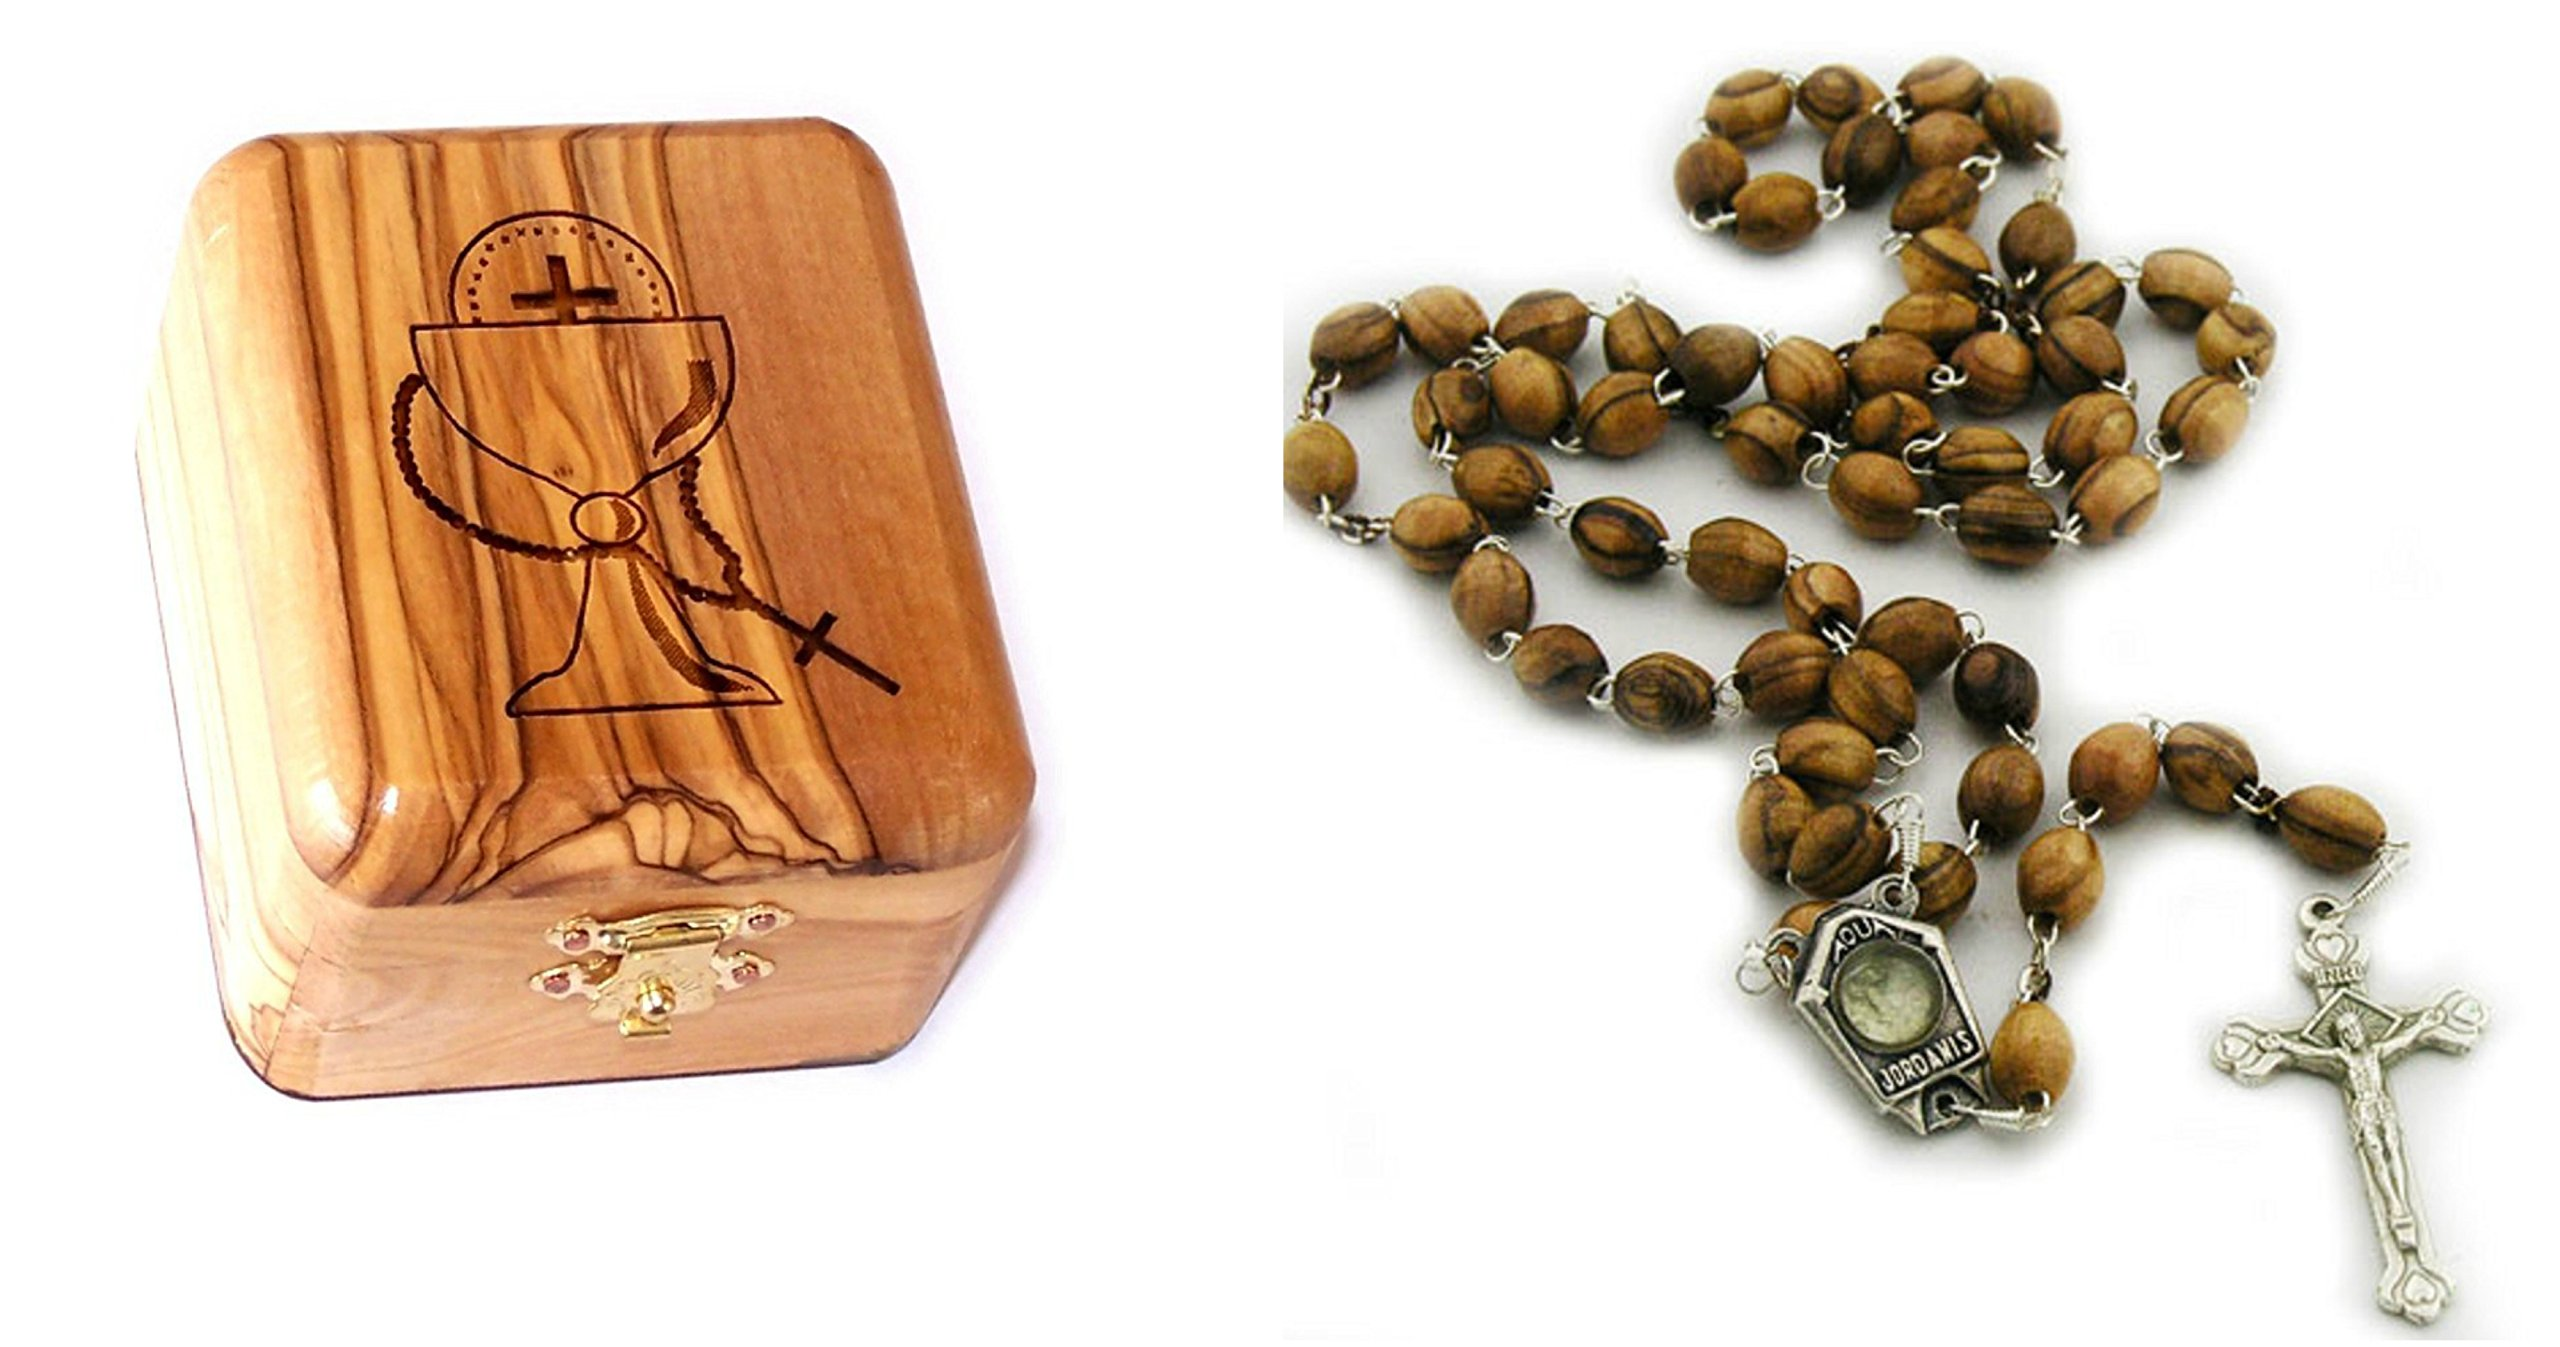 Bethlehem Gifts TM Olive Wood First Communion Jewelry Box with Rosary Set by (Water Silver Crucifix) by Bethlehem Gifts TM